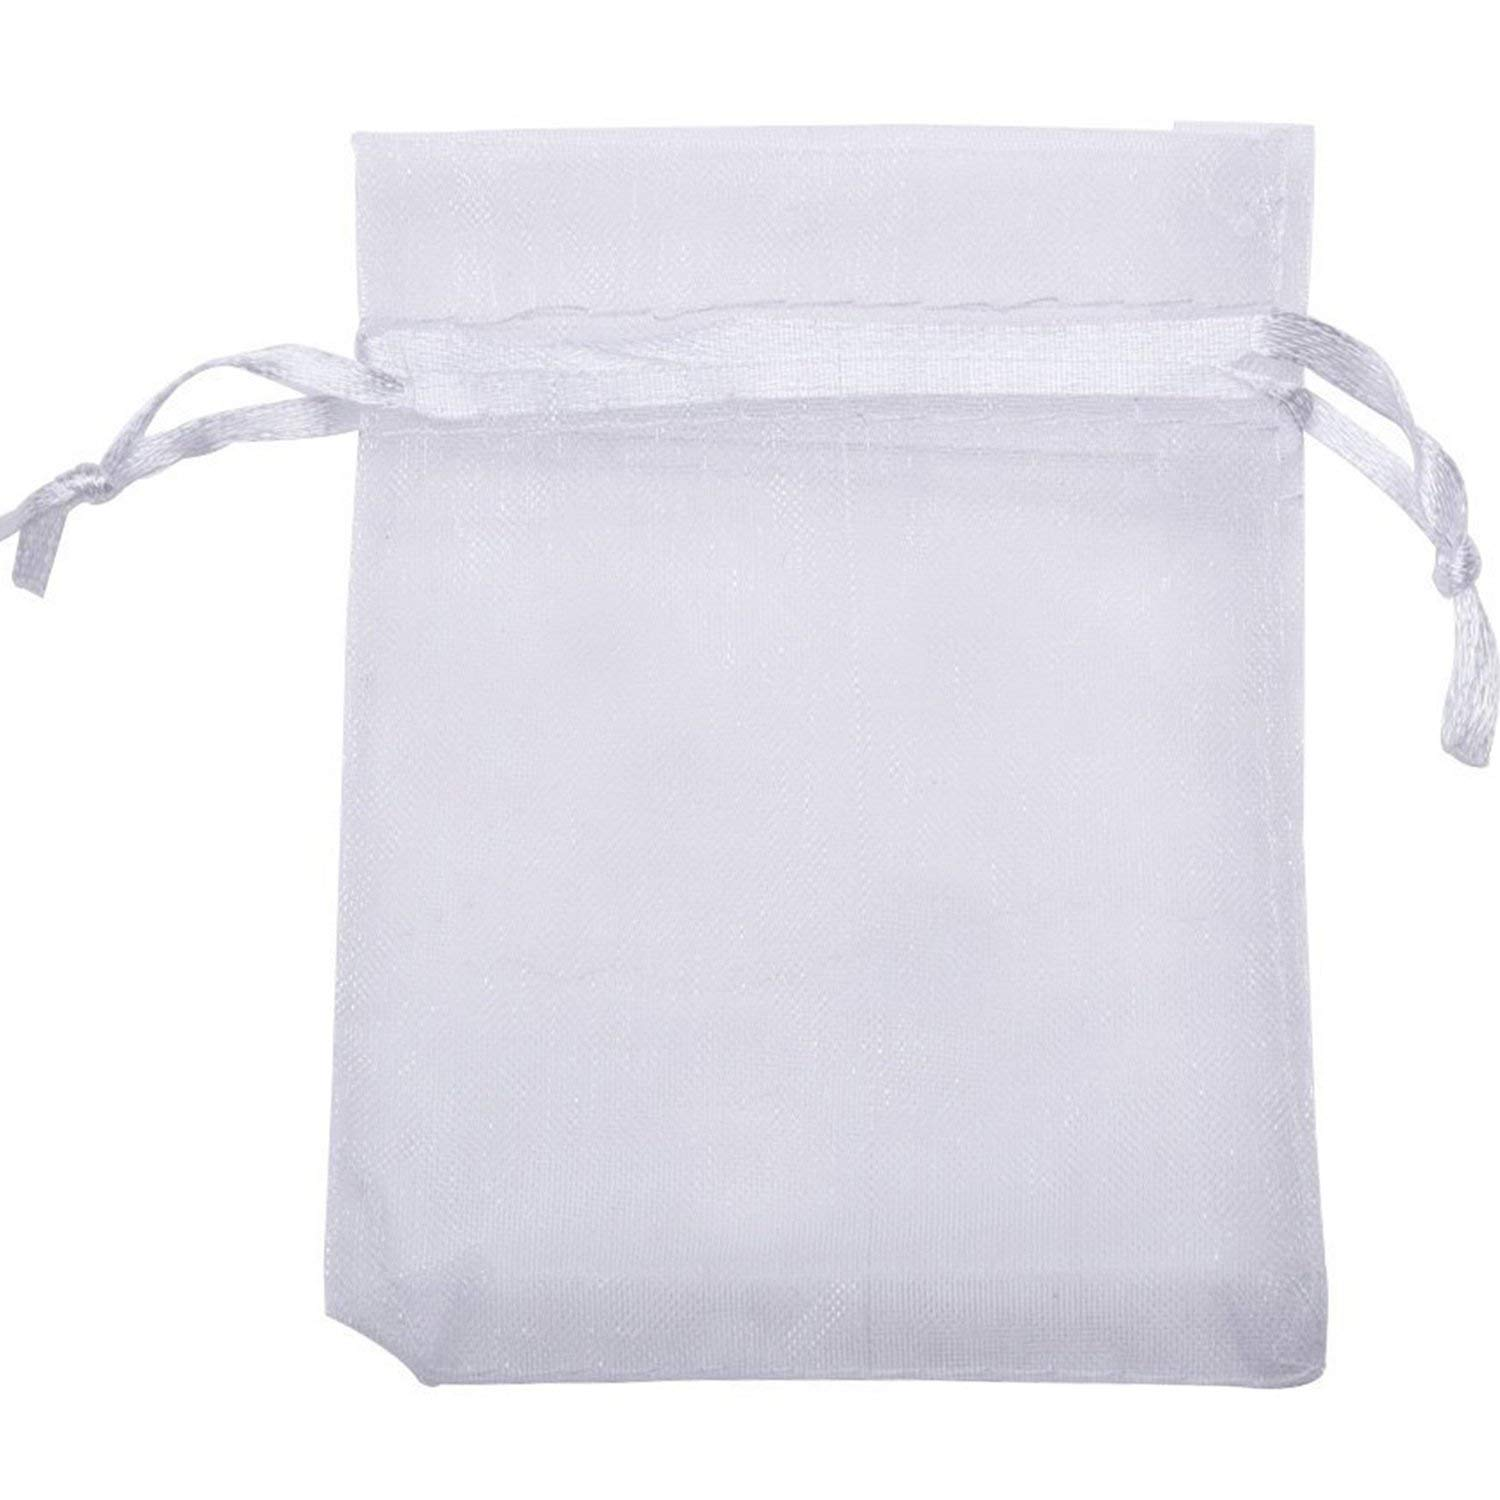 Mudder Organza Gift Bags Wedding Favour Bags Jewelry Pouches, Pack of 100 (2.8 x 3.5 Inch, White)